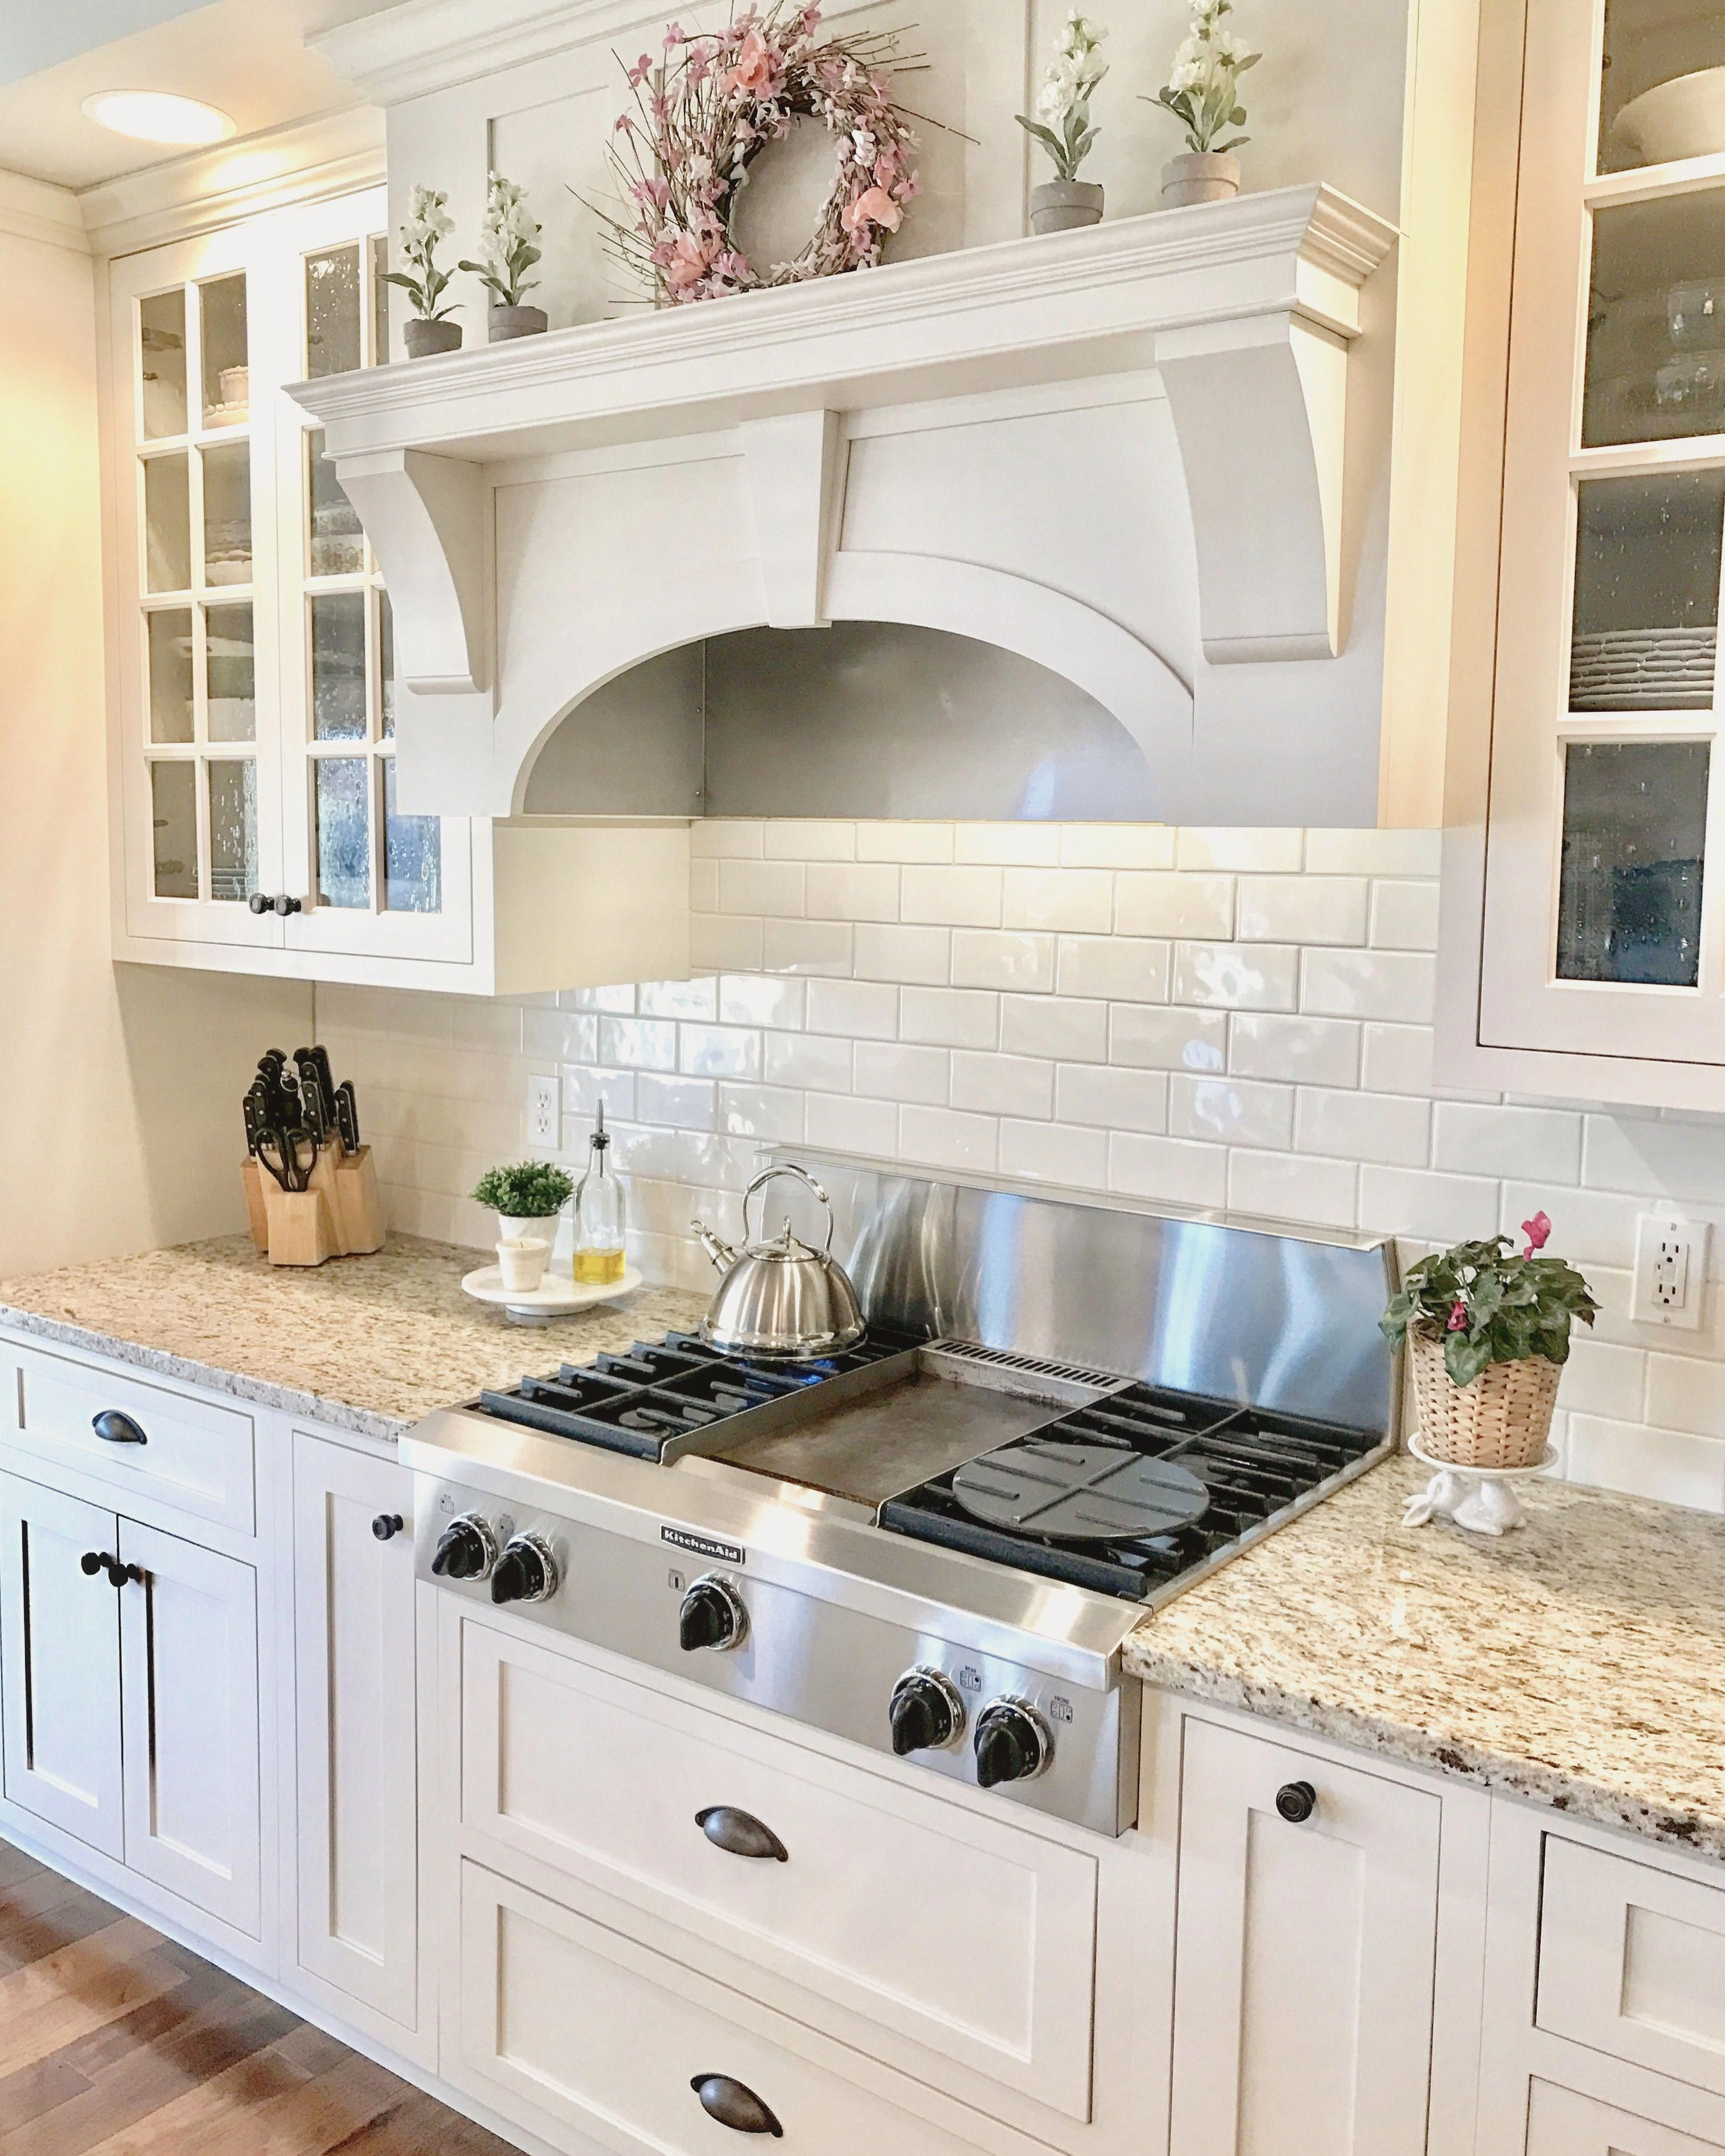 Off White Kitchen Cabinets New Venetian Gold Granite Glass Cabinet Doors Sherwin Wi Antique White Kitchen Antique White Kitchen Cabinets Kitchen Cabinets Decor